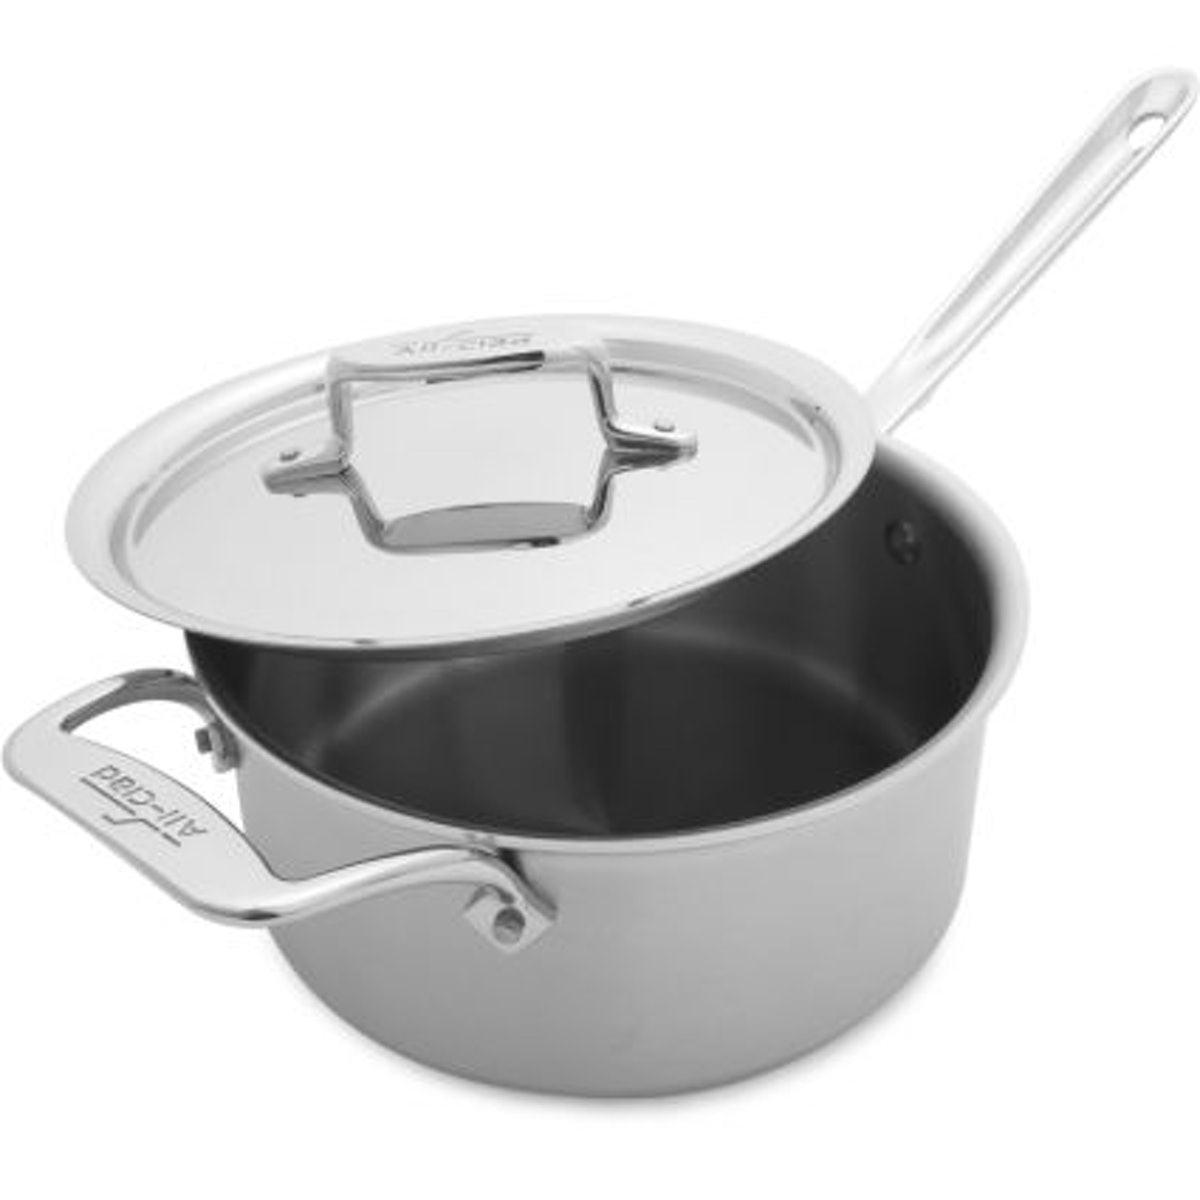 All-Clad d5 Brushed Stainless Steel Three Quart Saucepan